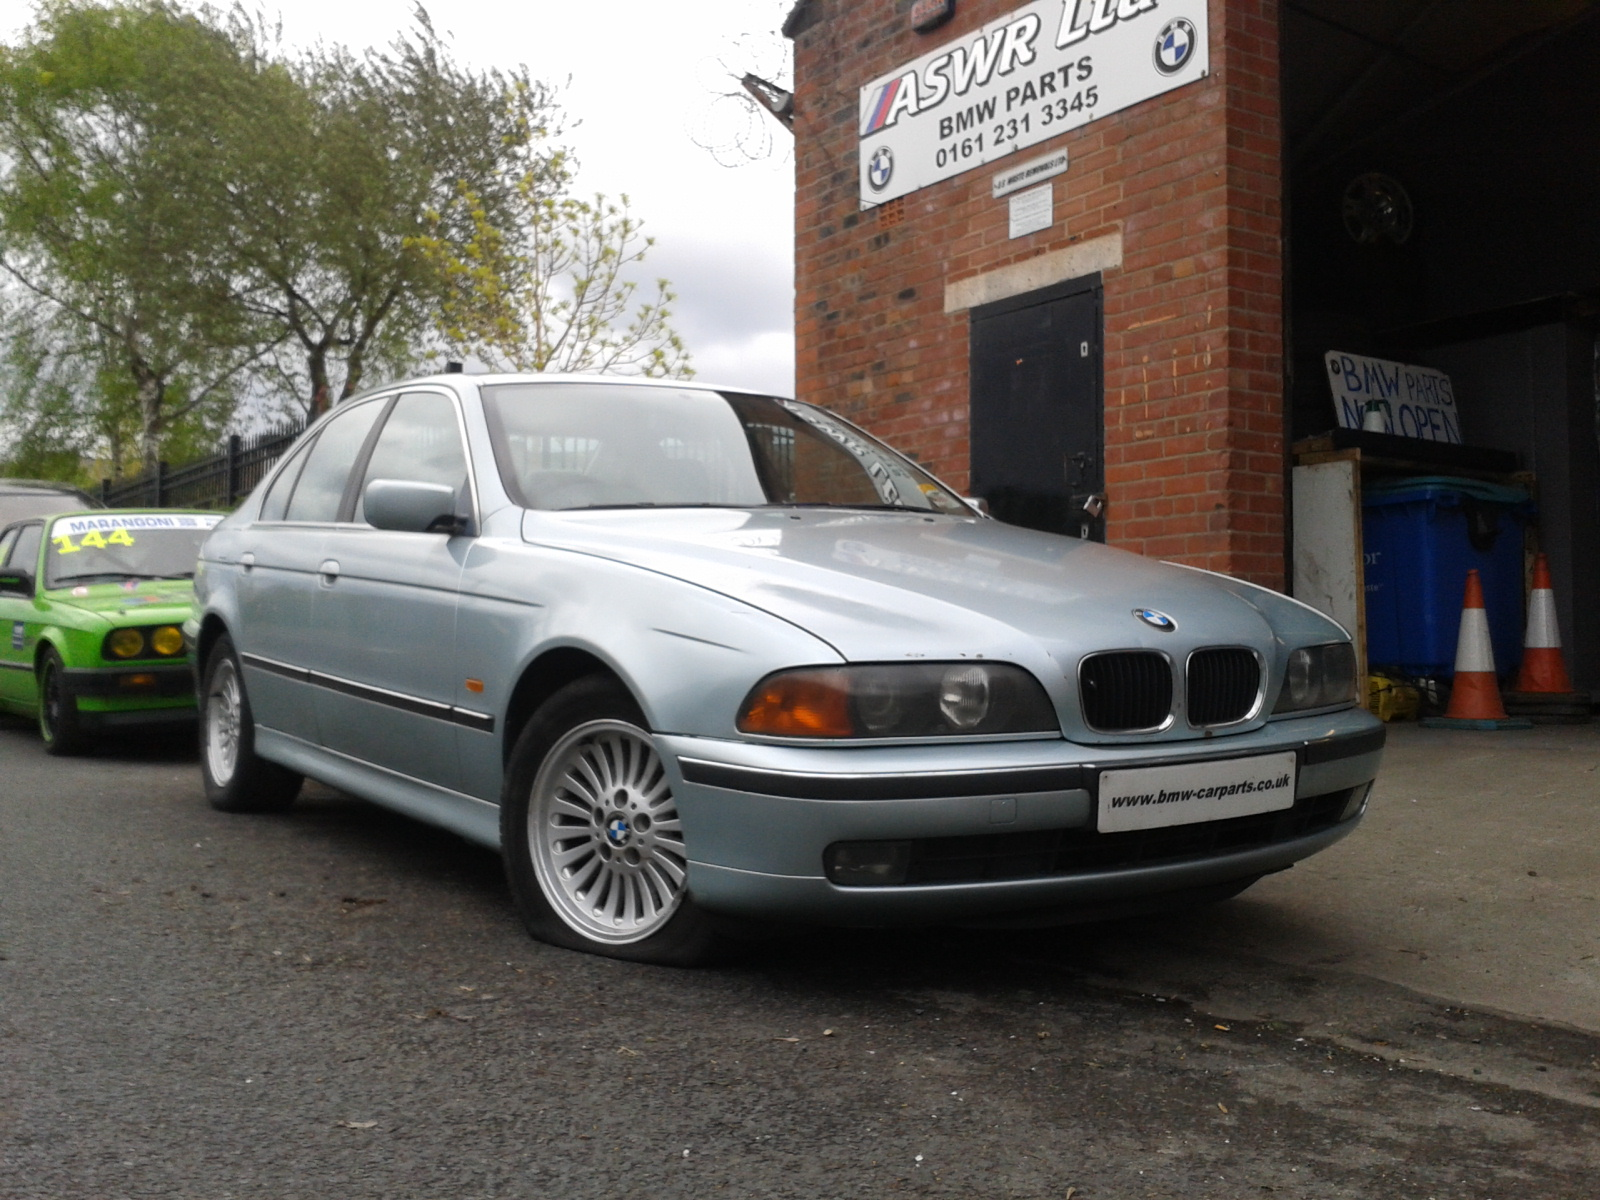 1999 bmw 5 series 520i se 4 door saloon petrol automatic breaking for used and spare parts. Black Bedroom Furniture Sets. Home Design Ideas